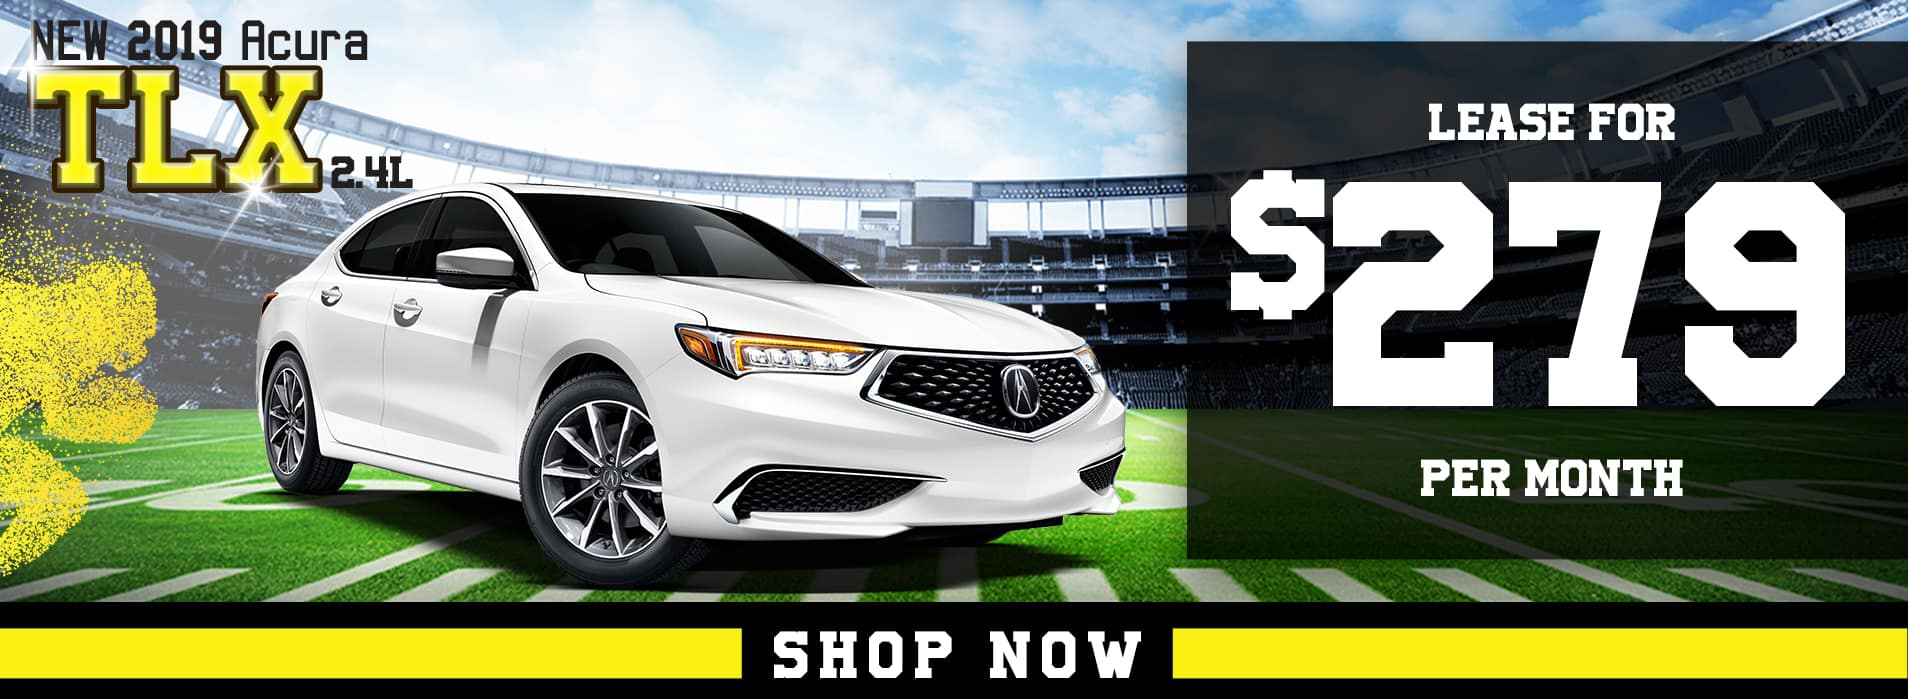 TLX lease for $279 per mo